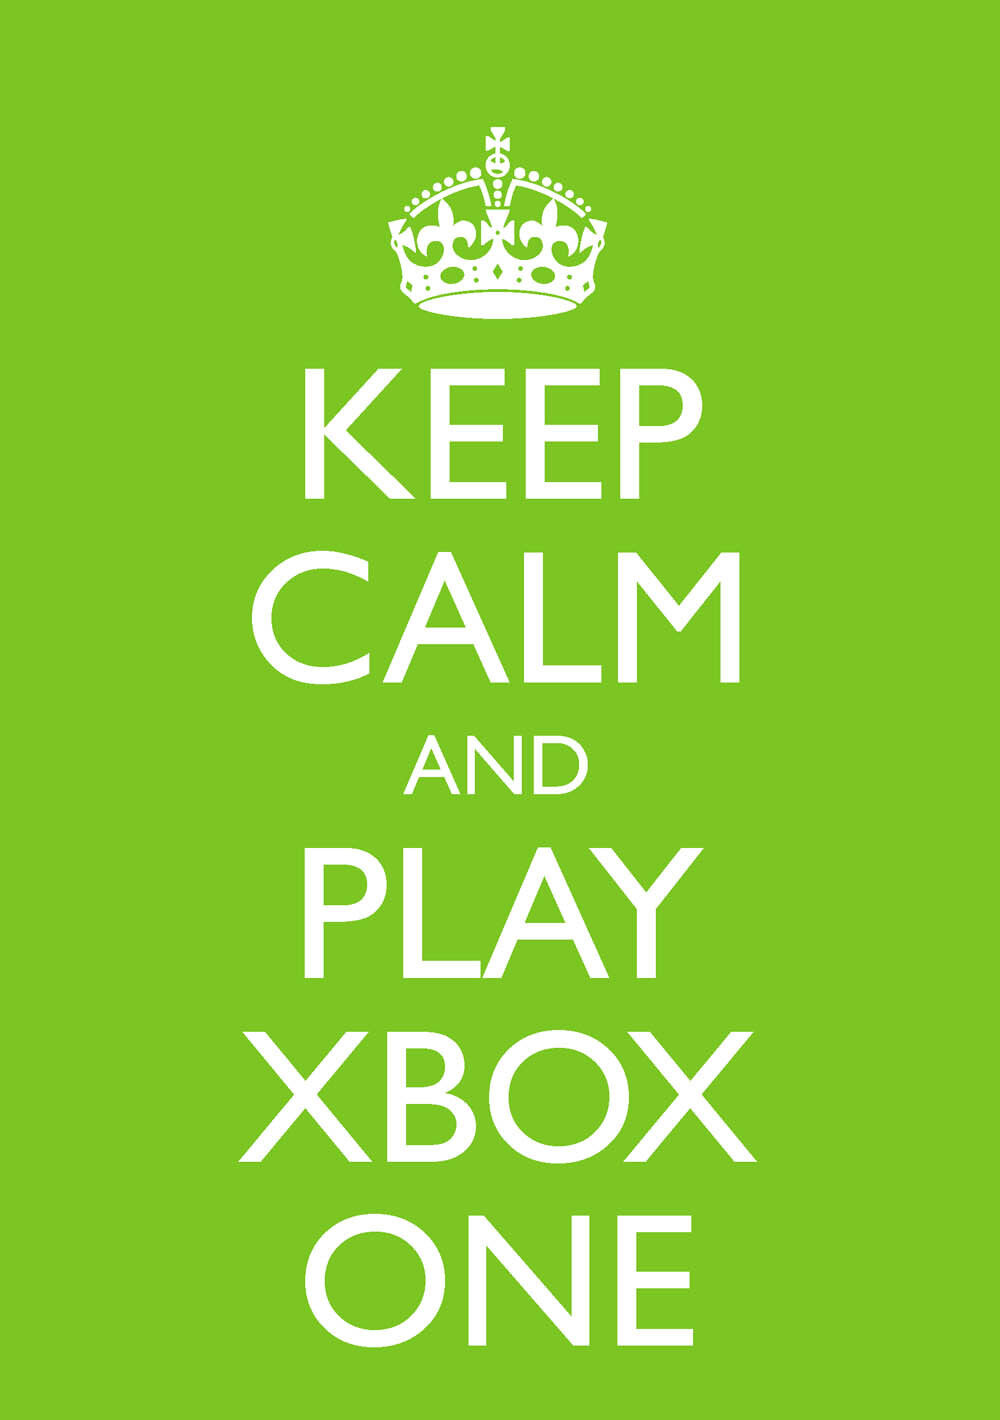 """Details about """"Keep Calm and Play Xbox One"""" Blank Greetings Birthday Card-  A8 Green"""